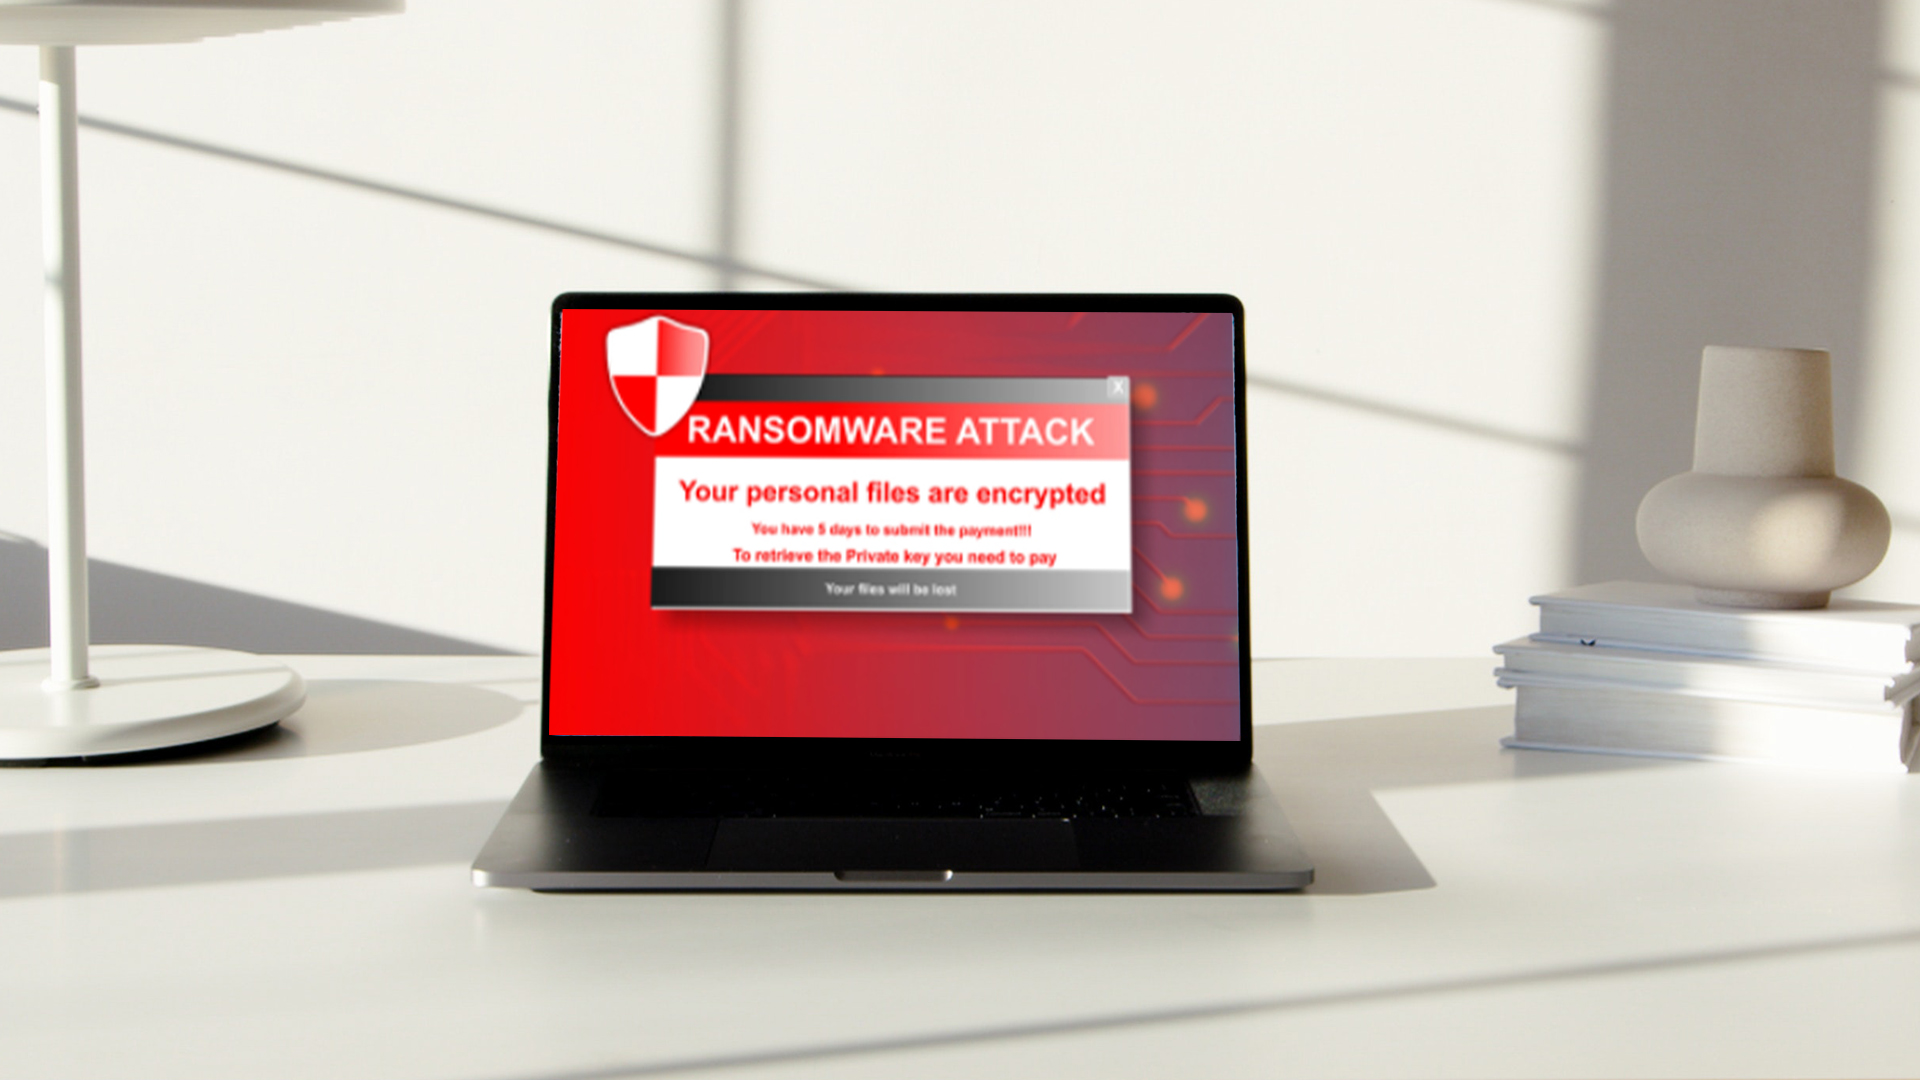 Ransomware prevention is better than cure